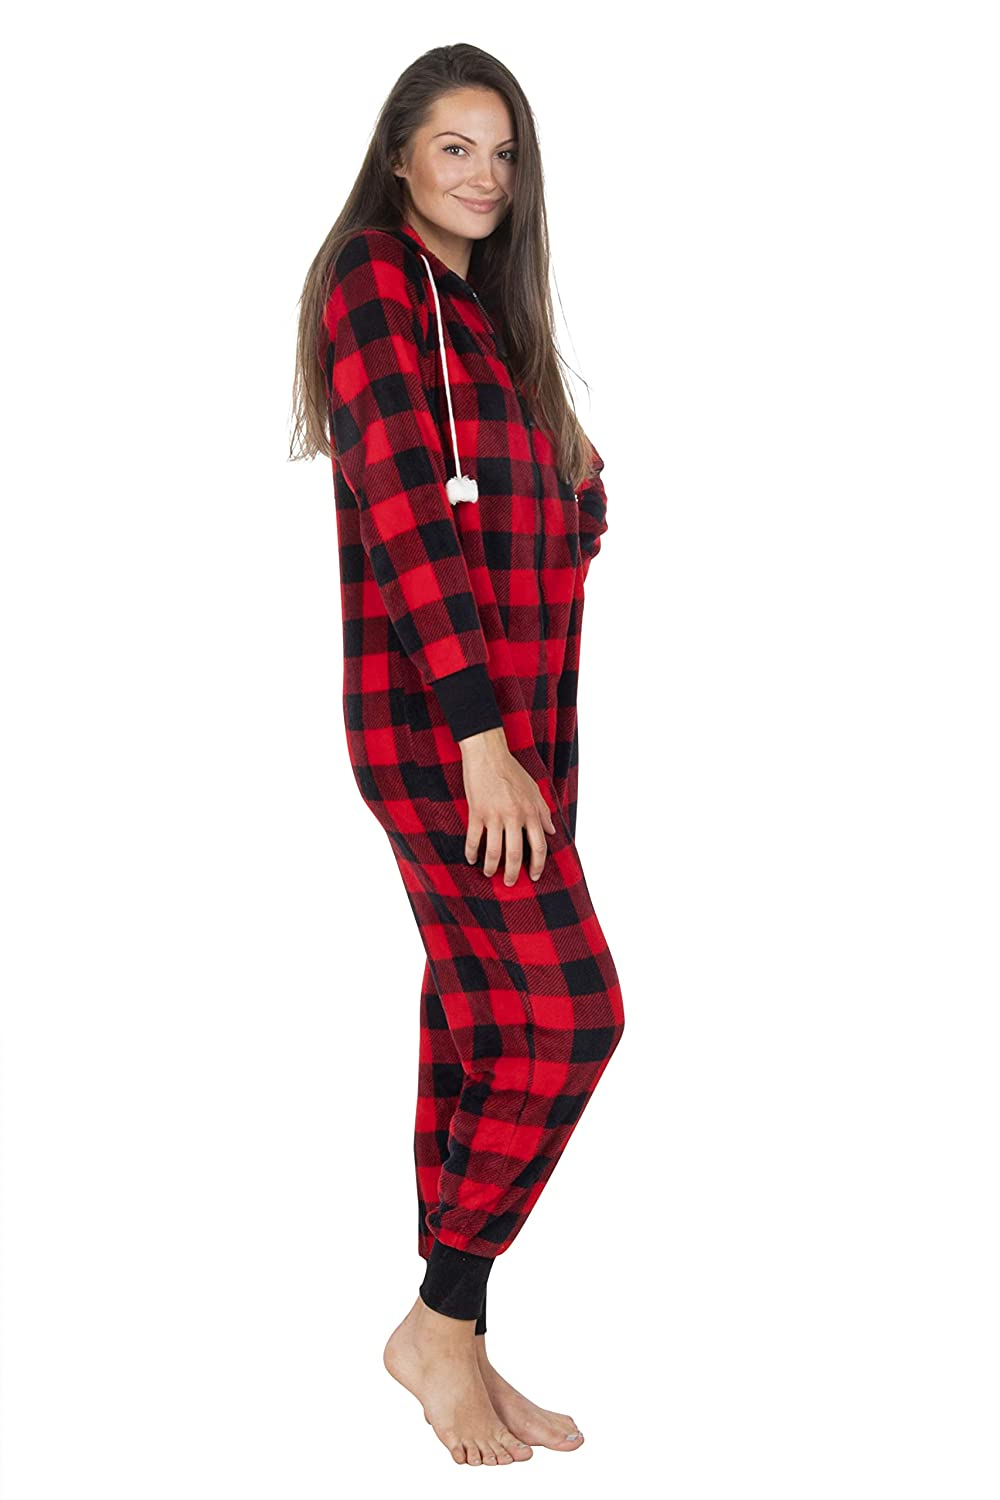 Totally Pink Womens Warm and Cozy Plush Adult Onesies for Women One Piece Novelty Pajamas